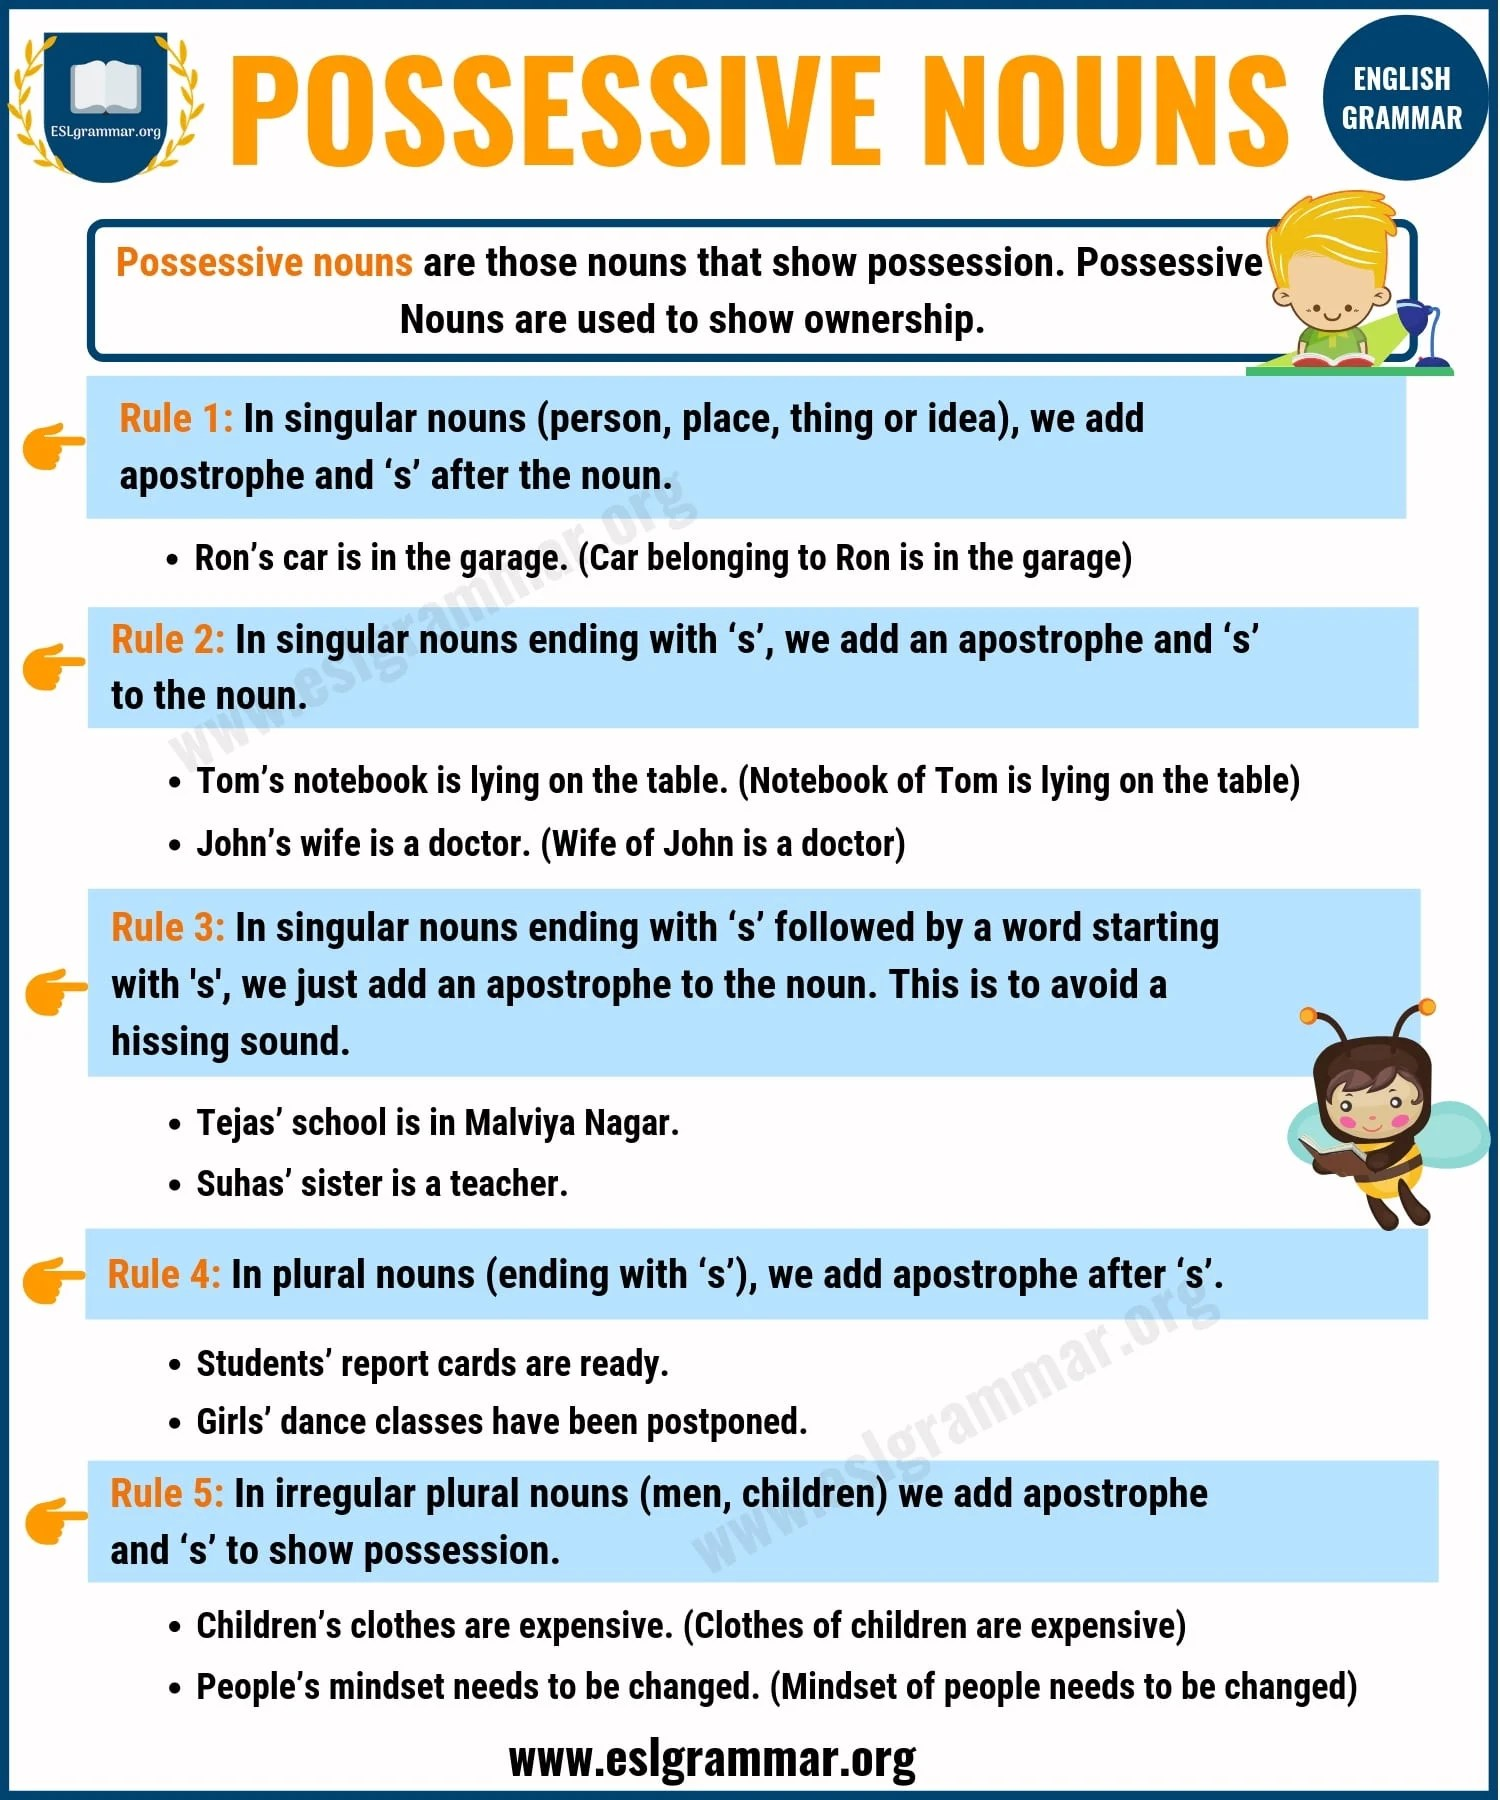 Possessive Nouns Definition Rules And Useful Examples